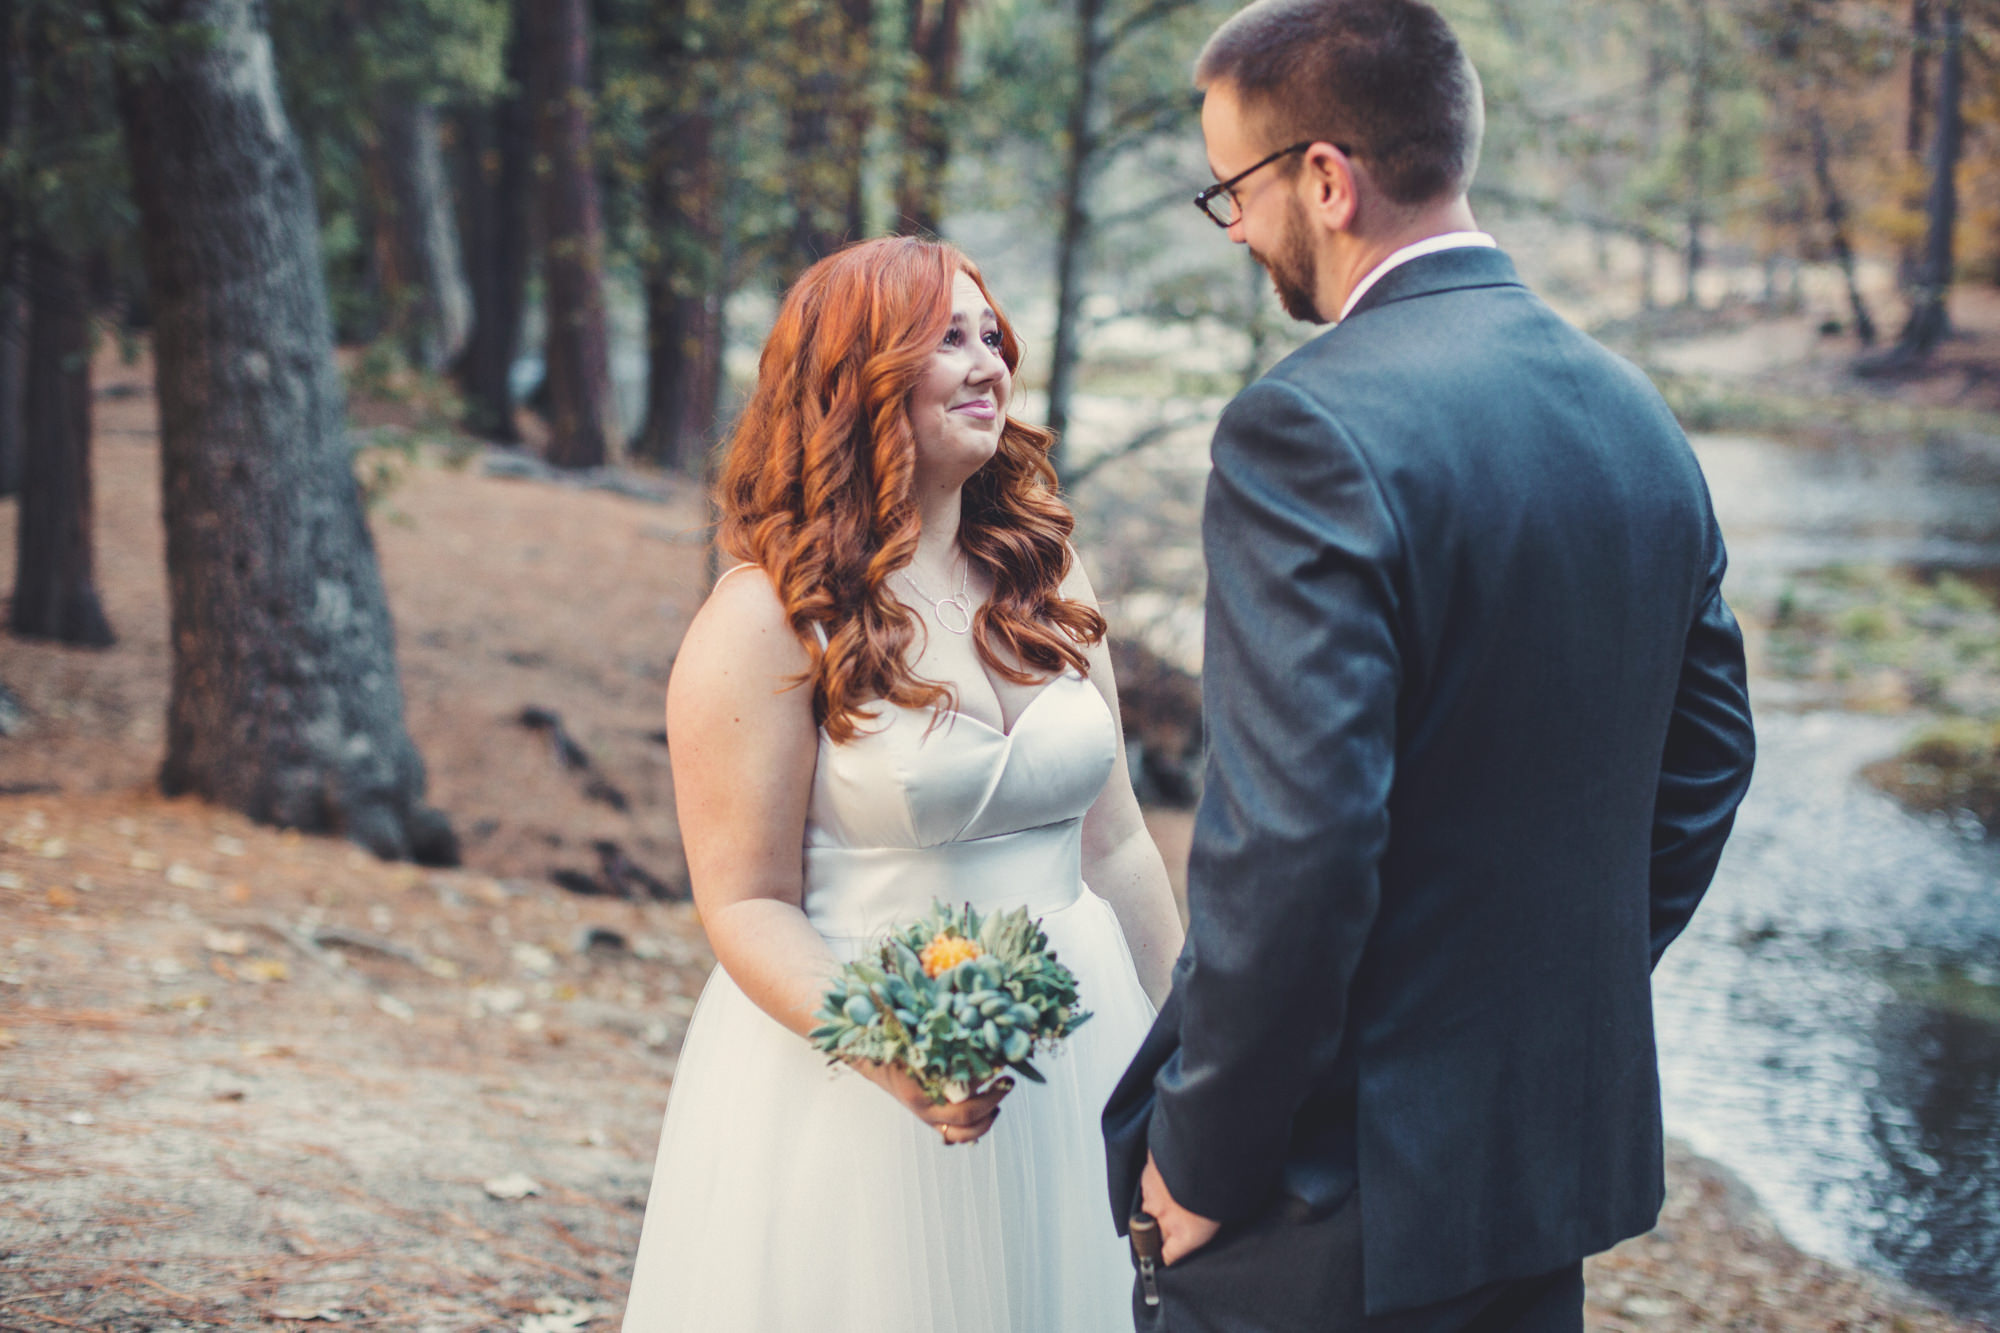 Yosemite wedding ©Anne-Claire Brun 52